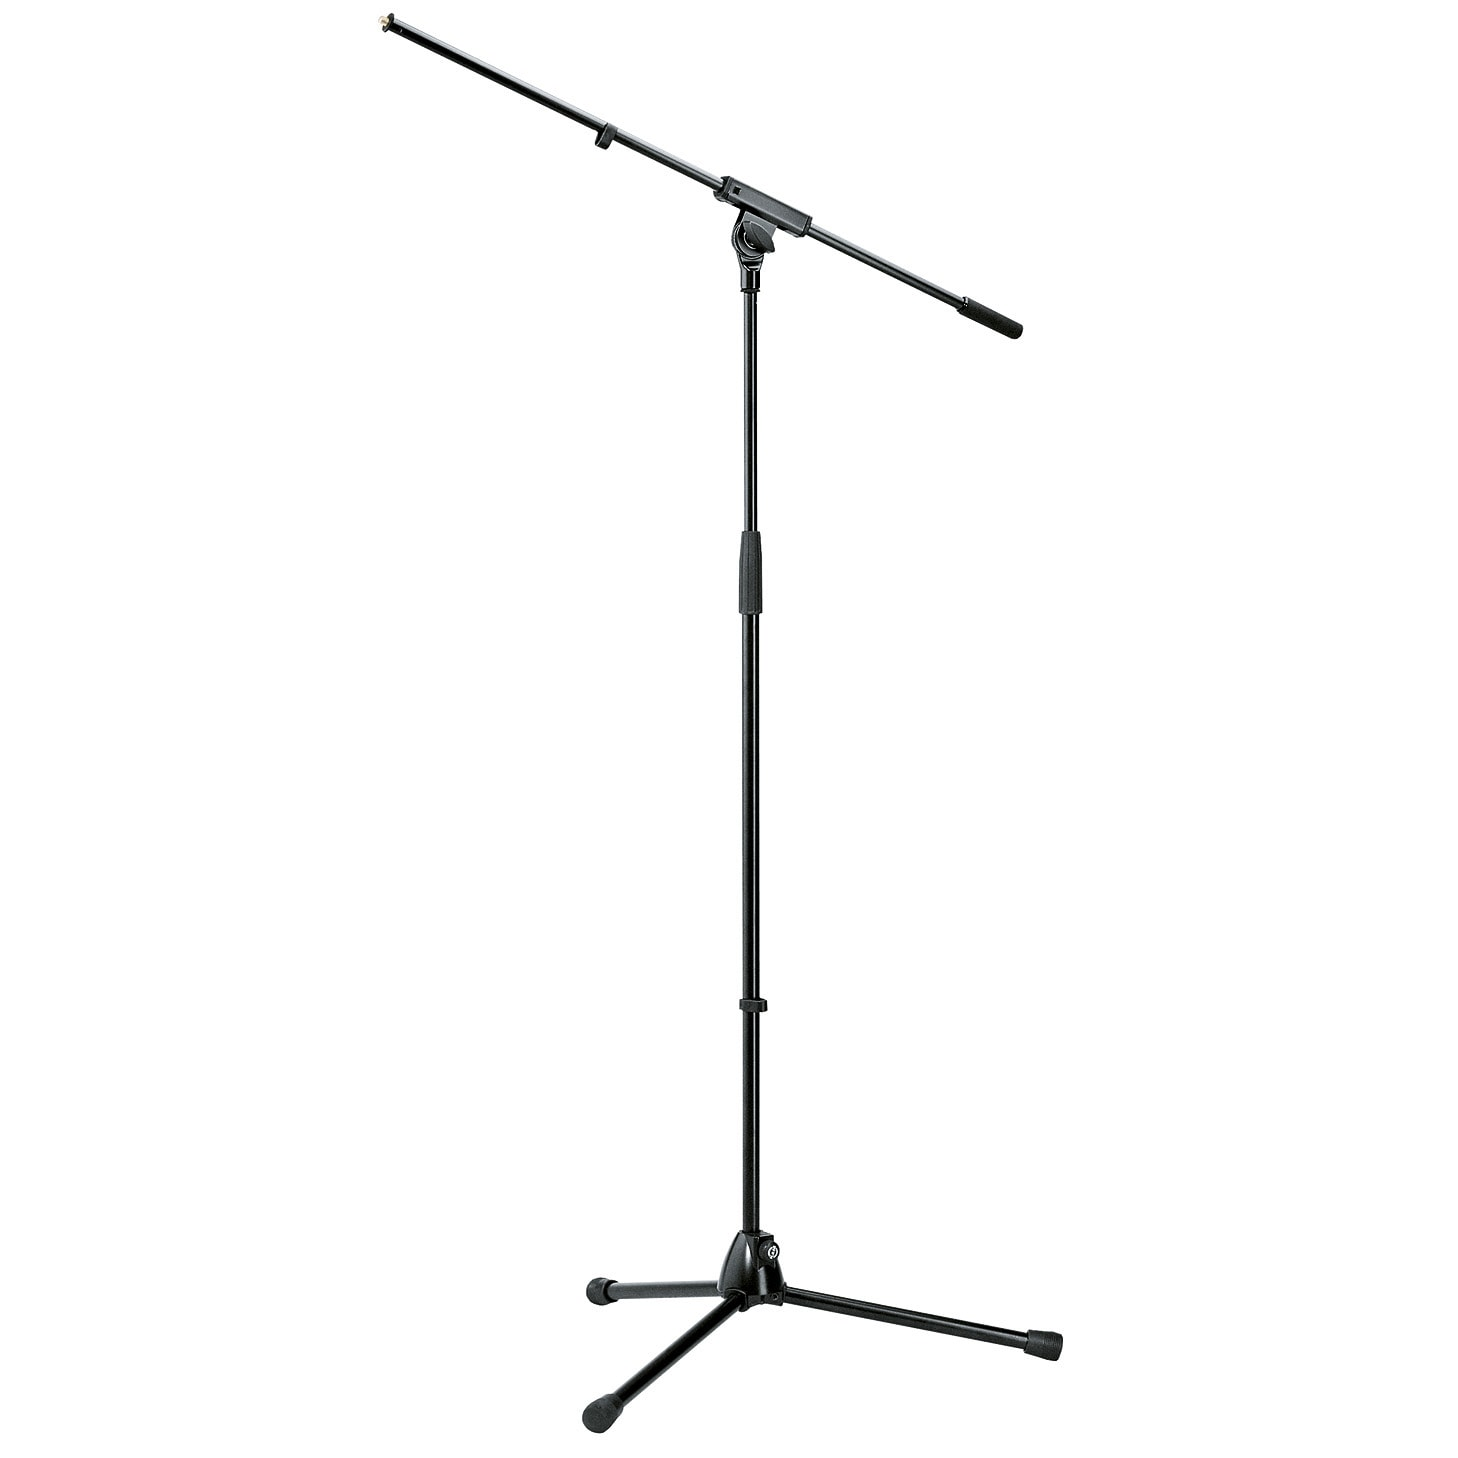 KM210_6 - Microphone stand